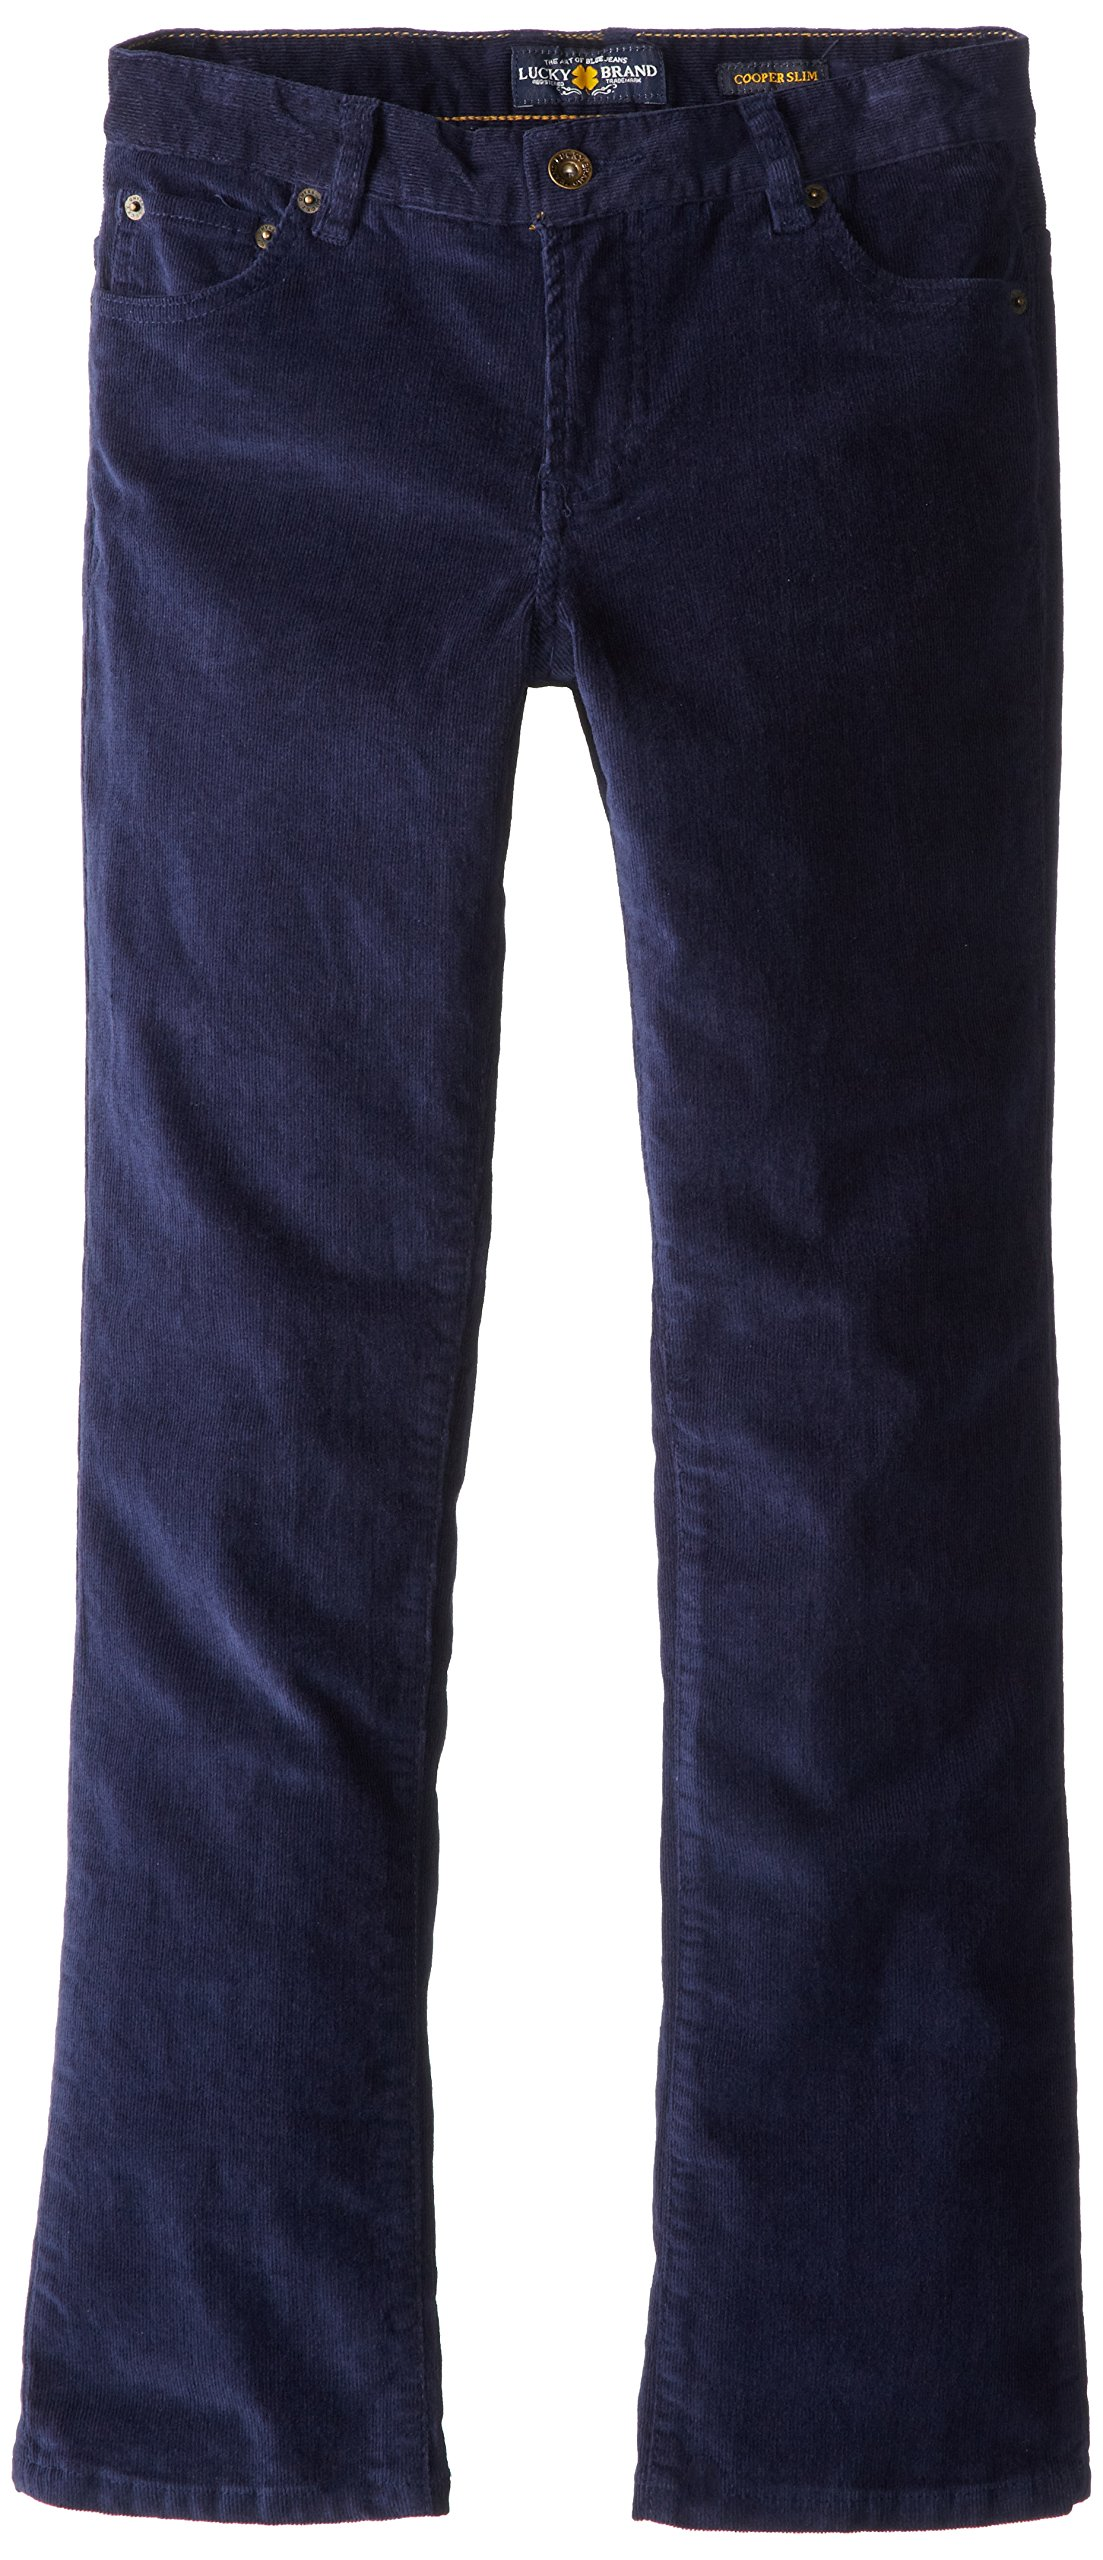 Lucky Brand Big Boys' Studebaker Billy Fit Cord Pant, Peacoat, 14